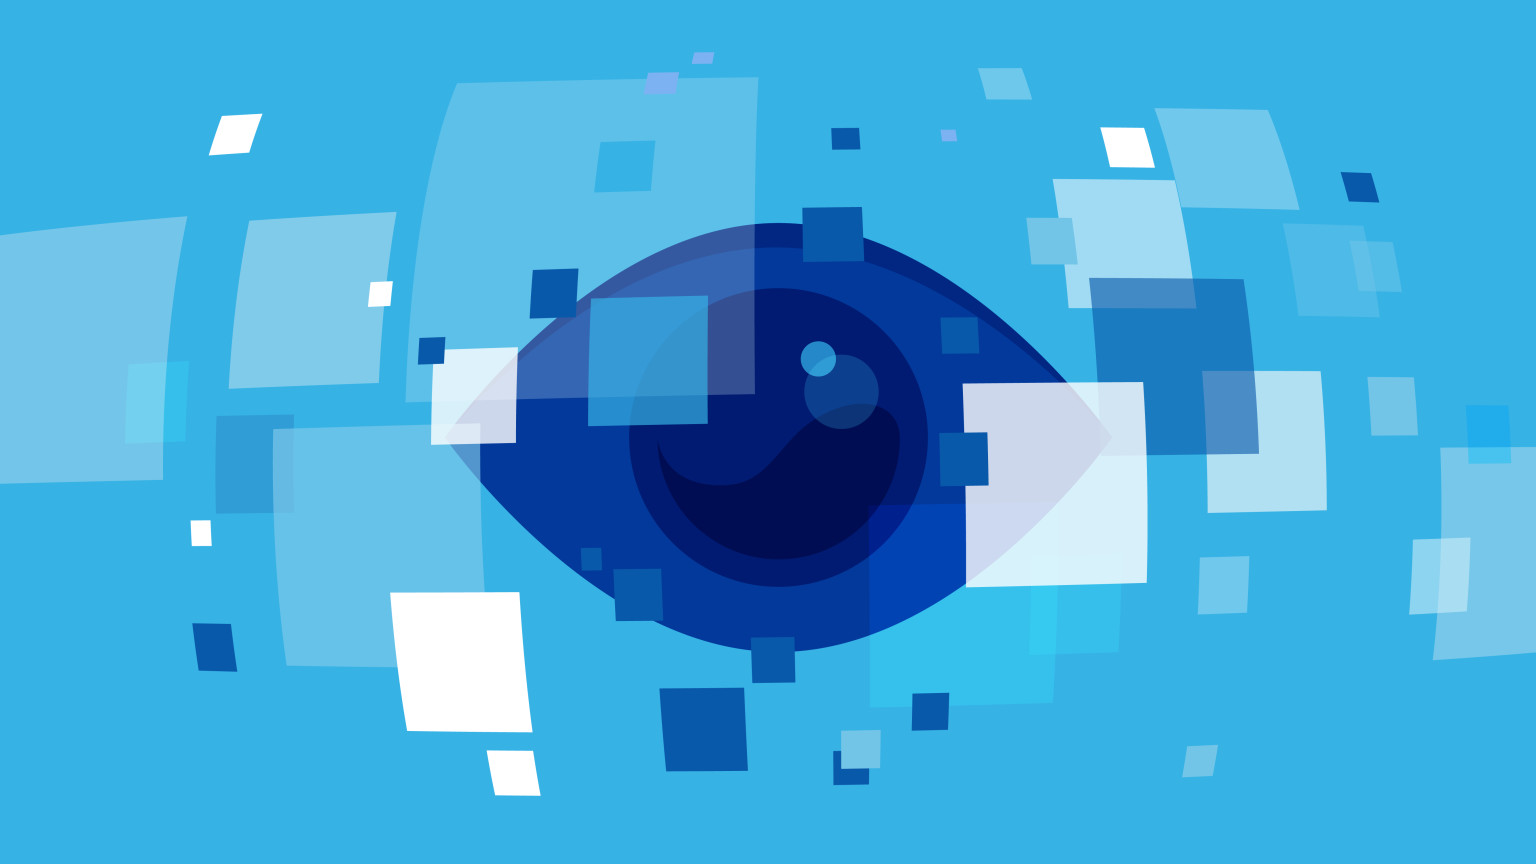 An illustration of a large eye looking at a number of transparent screens